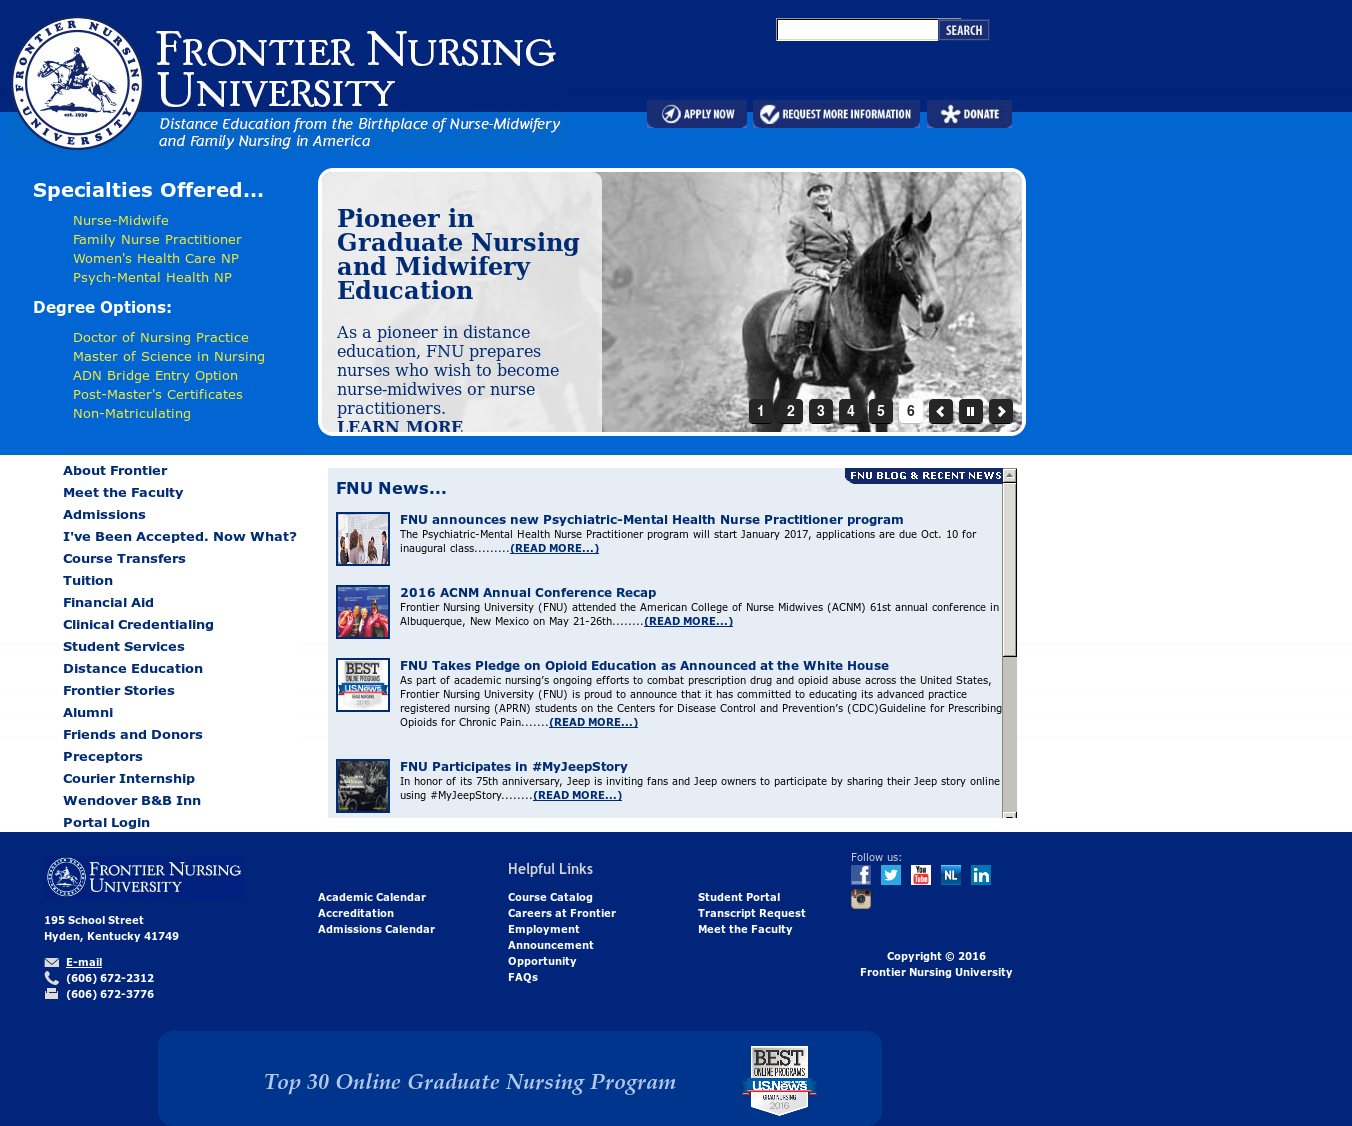 Frontier Nursing Service Competitors, Revenue and Employees - Owler